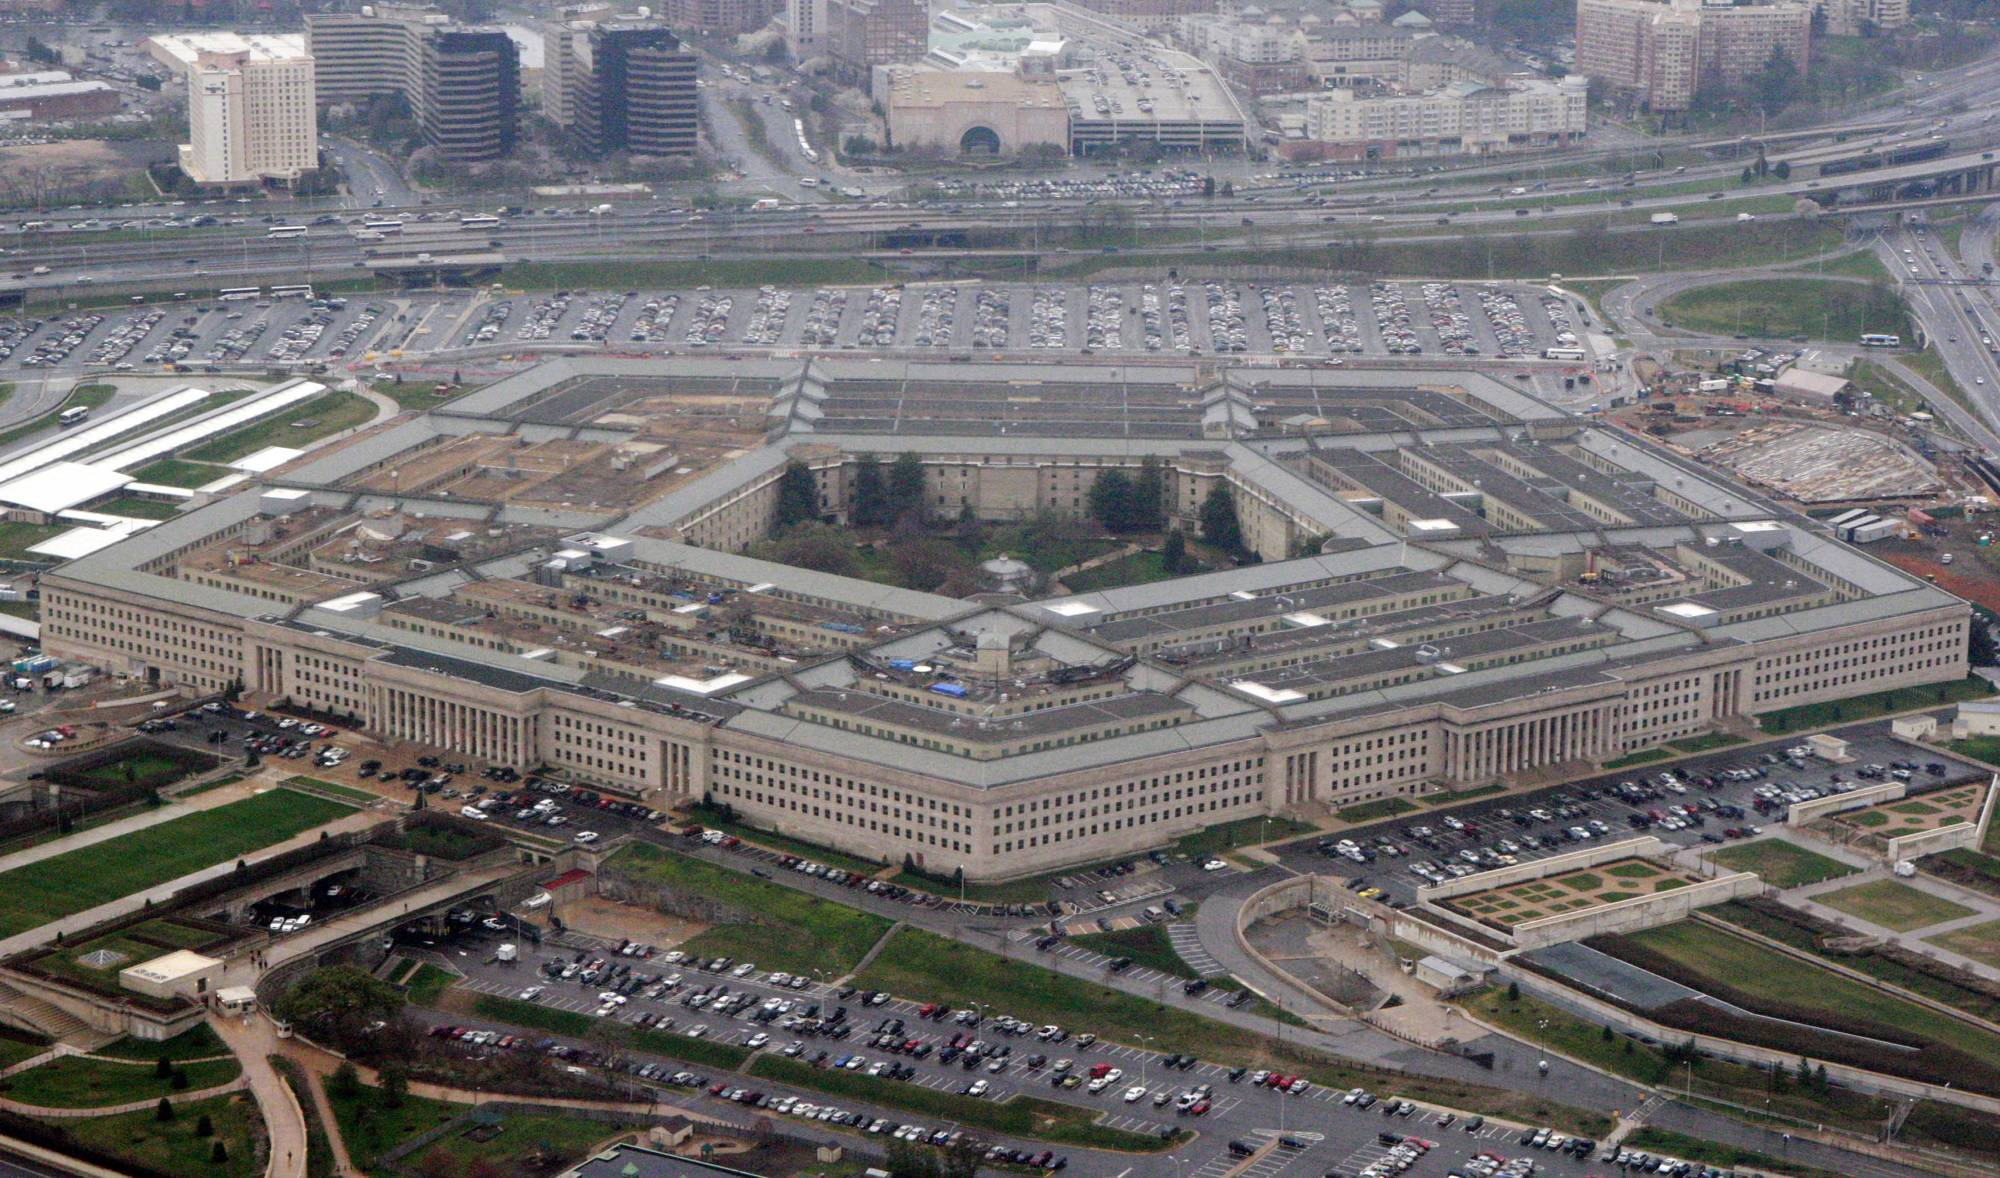 FILE - In this March 27, 2008, file photo, an aerial view of the Pentagon. The Army is putting together a series of new mental health, counseling and career management programs to shape stronger, more ethical leaders. The move is an effort to grappling with an embarrassing rash of misconduct and behavior problems among senior officers. (AP Photo/Charles Dharapak, File)